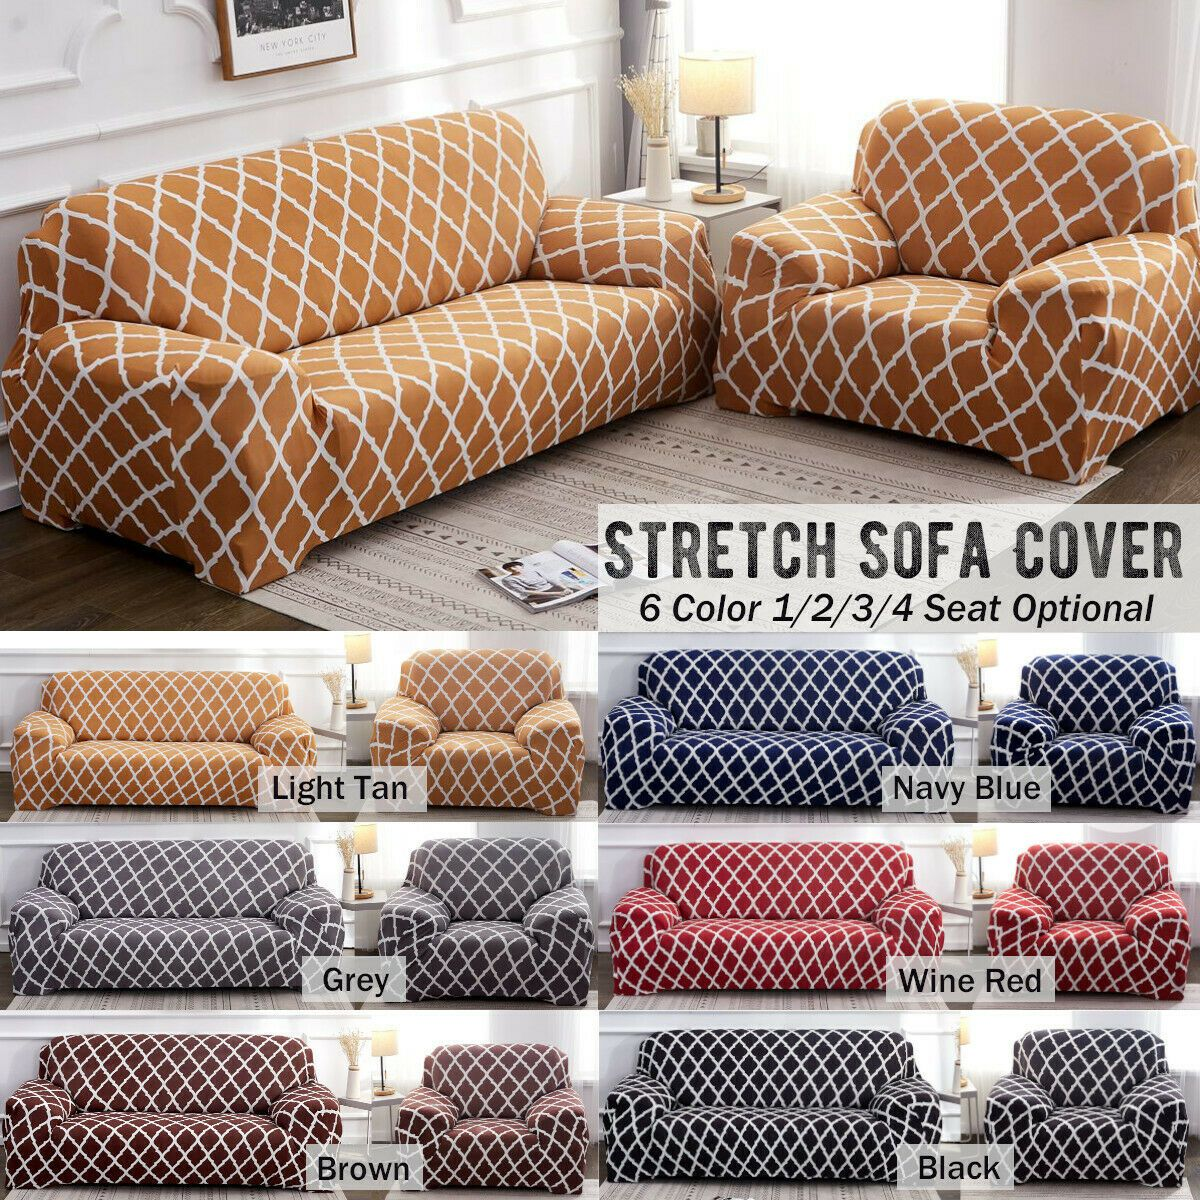 Sofa Cover Chair Covers Couch Slipcover Stretch Fabric Protector Seater Pad Mat Sofa Slipcover Couch Covers Slipcovers Slip Covers Couch Ektorp Sofa Cover